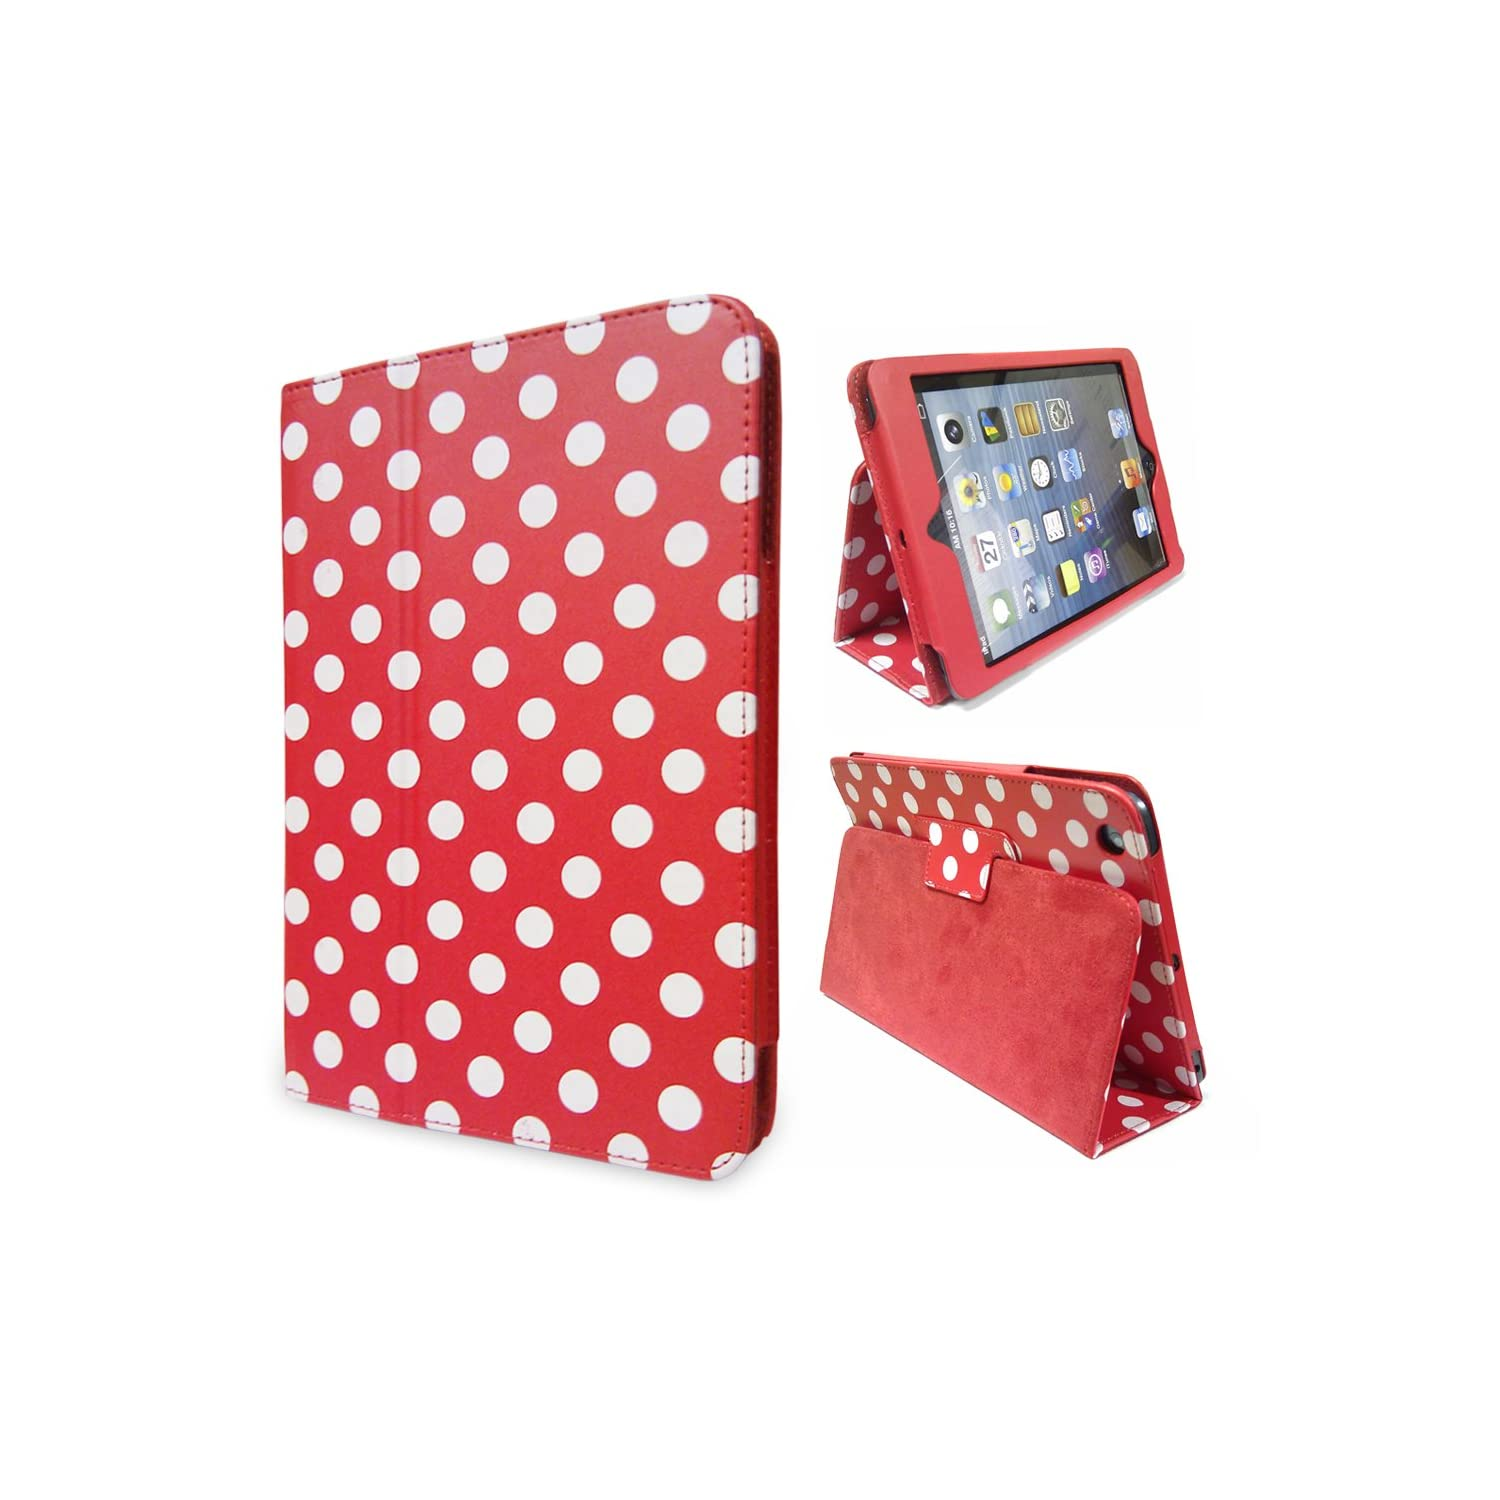 LOVE MY CASE / Apple iPad Mini / Stylish Red Polka Dot Case / Stand with Magnetic lock